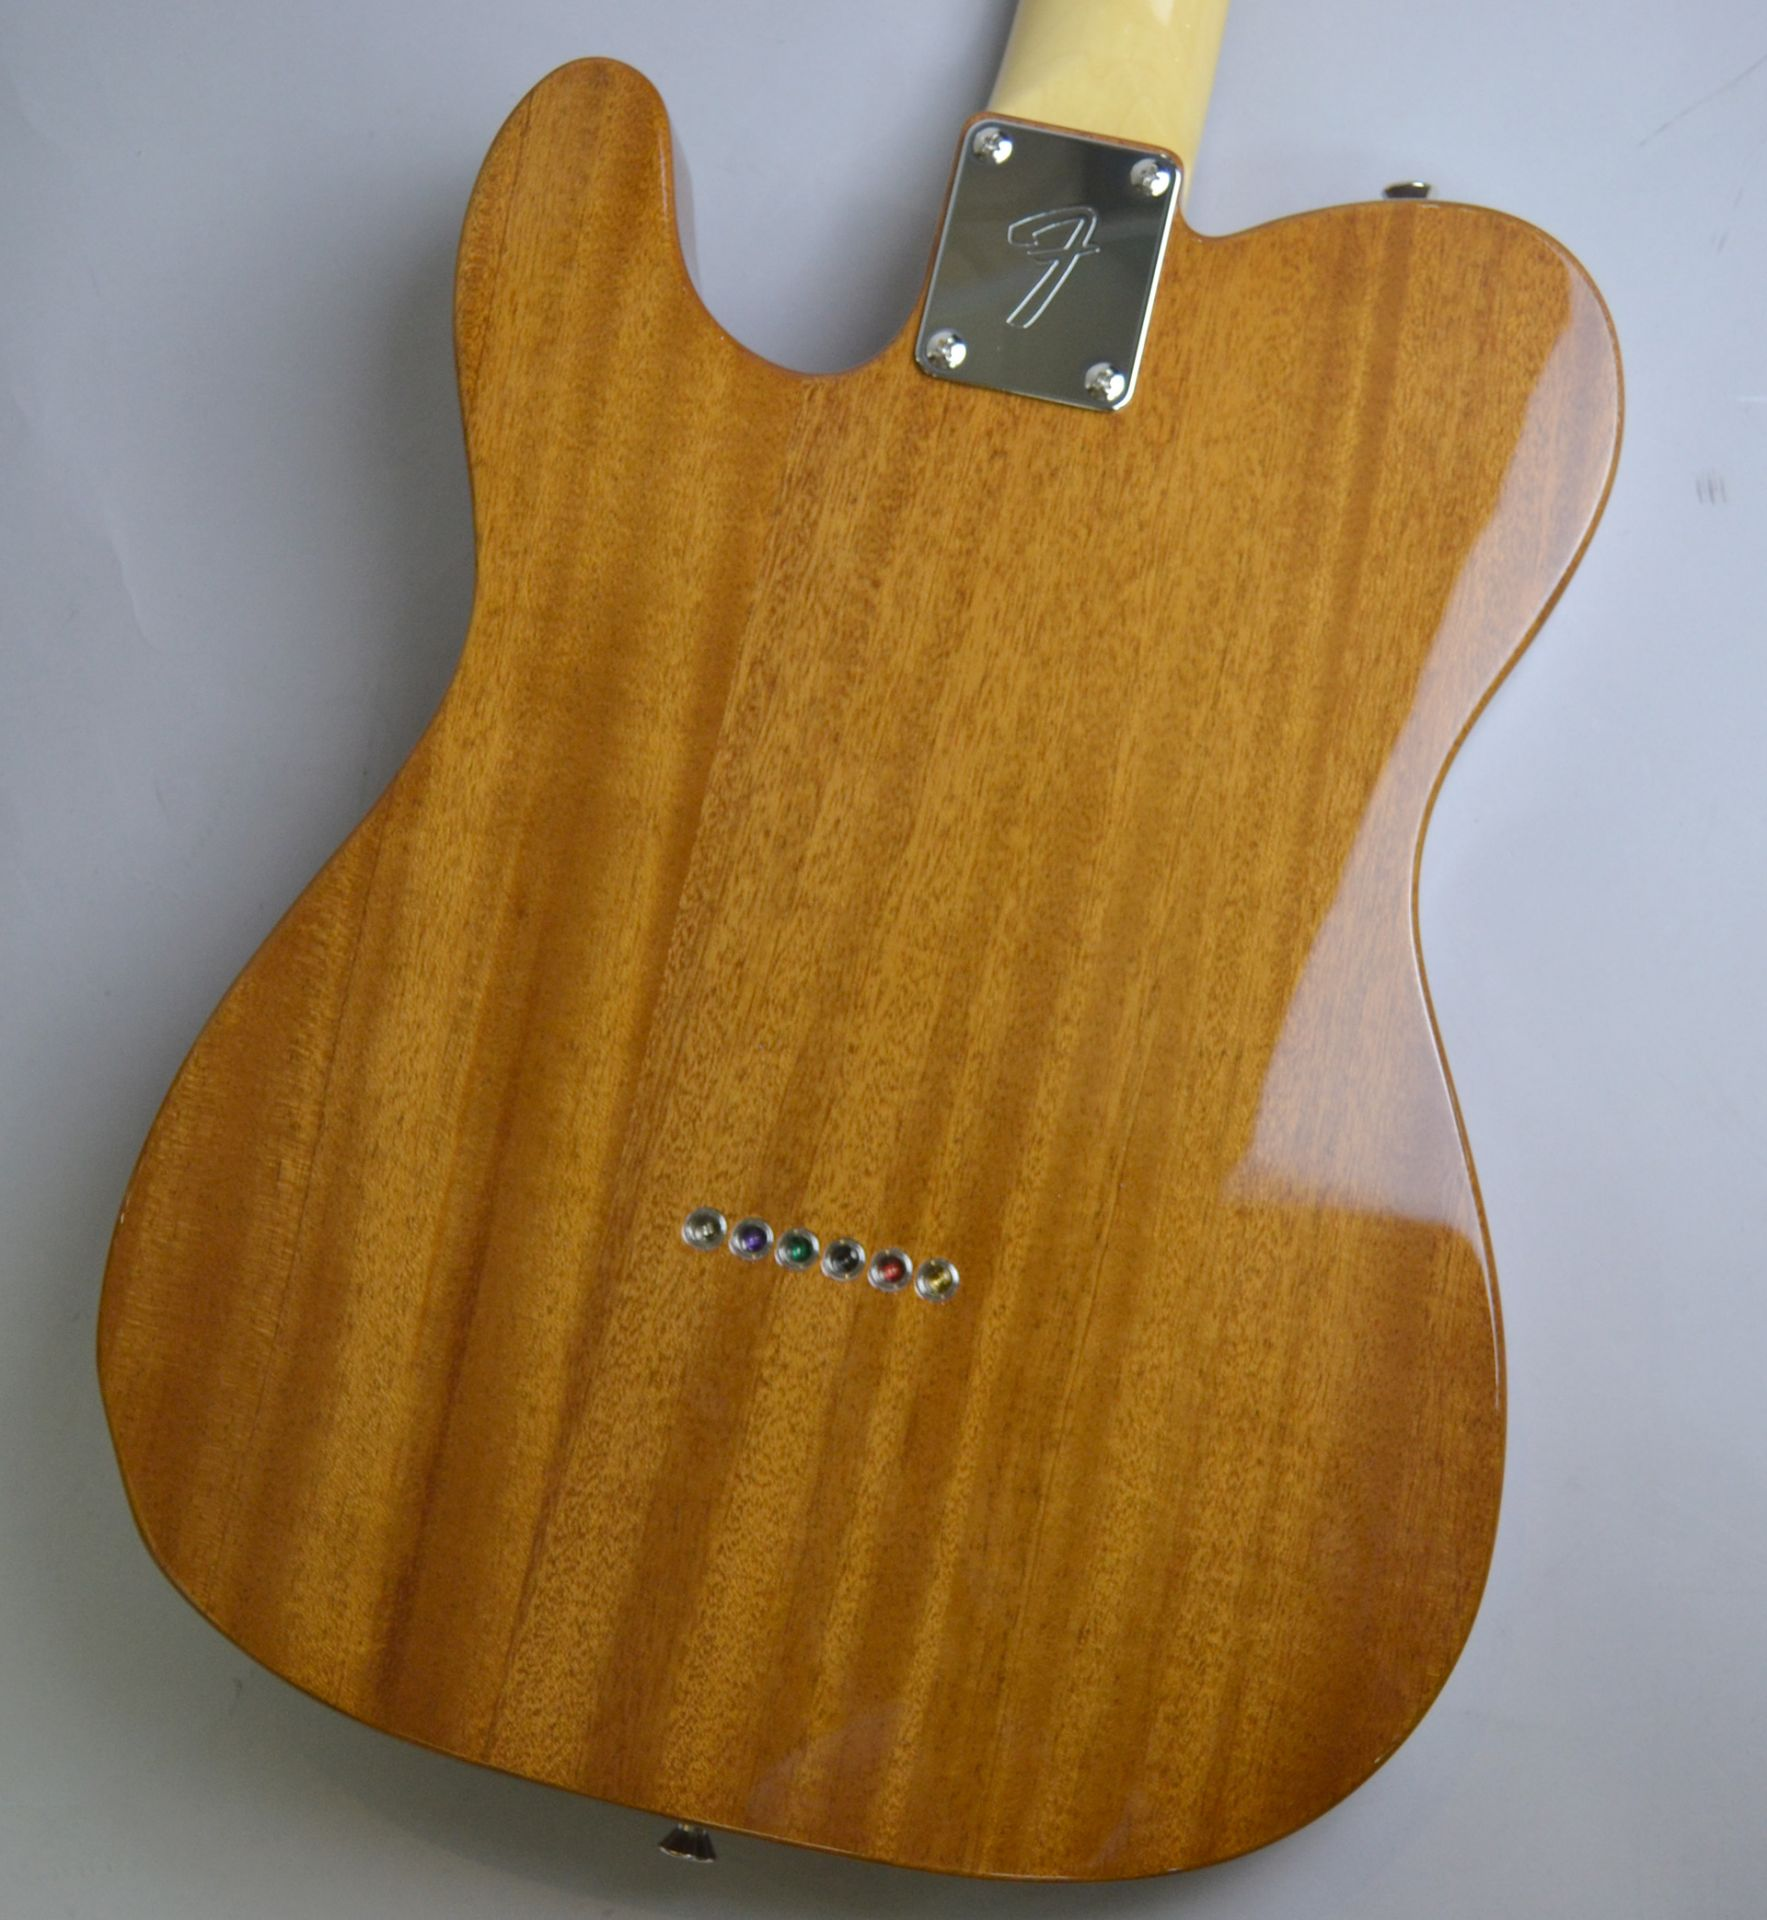 Made in Japan Traditional 69 Telecaster Thinline NAT シンラインの全体画像(縦)